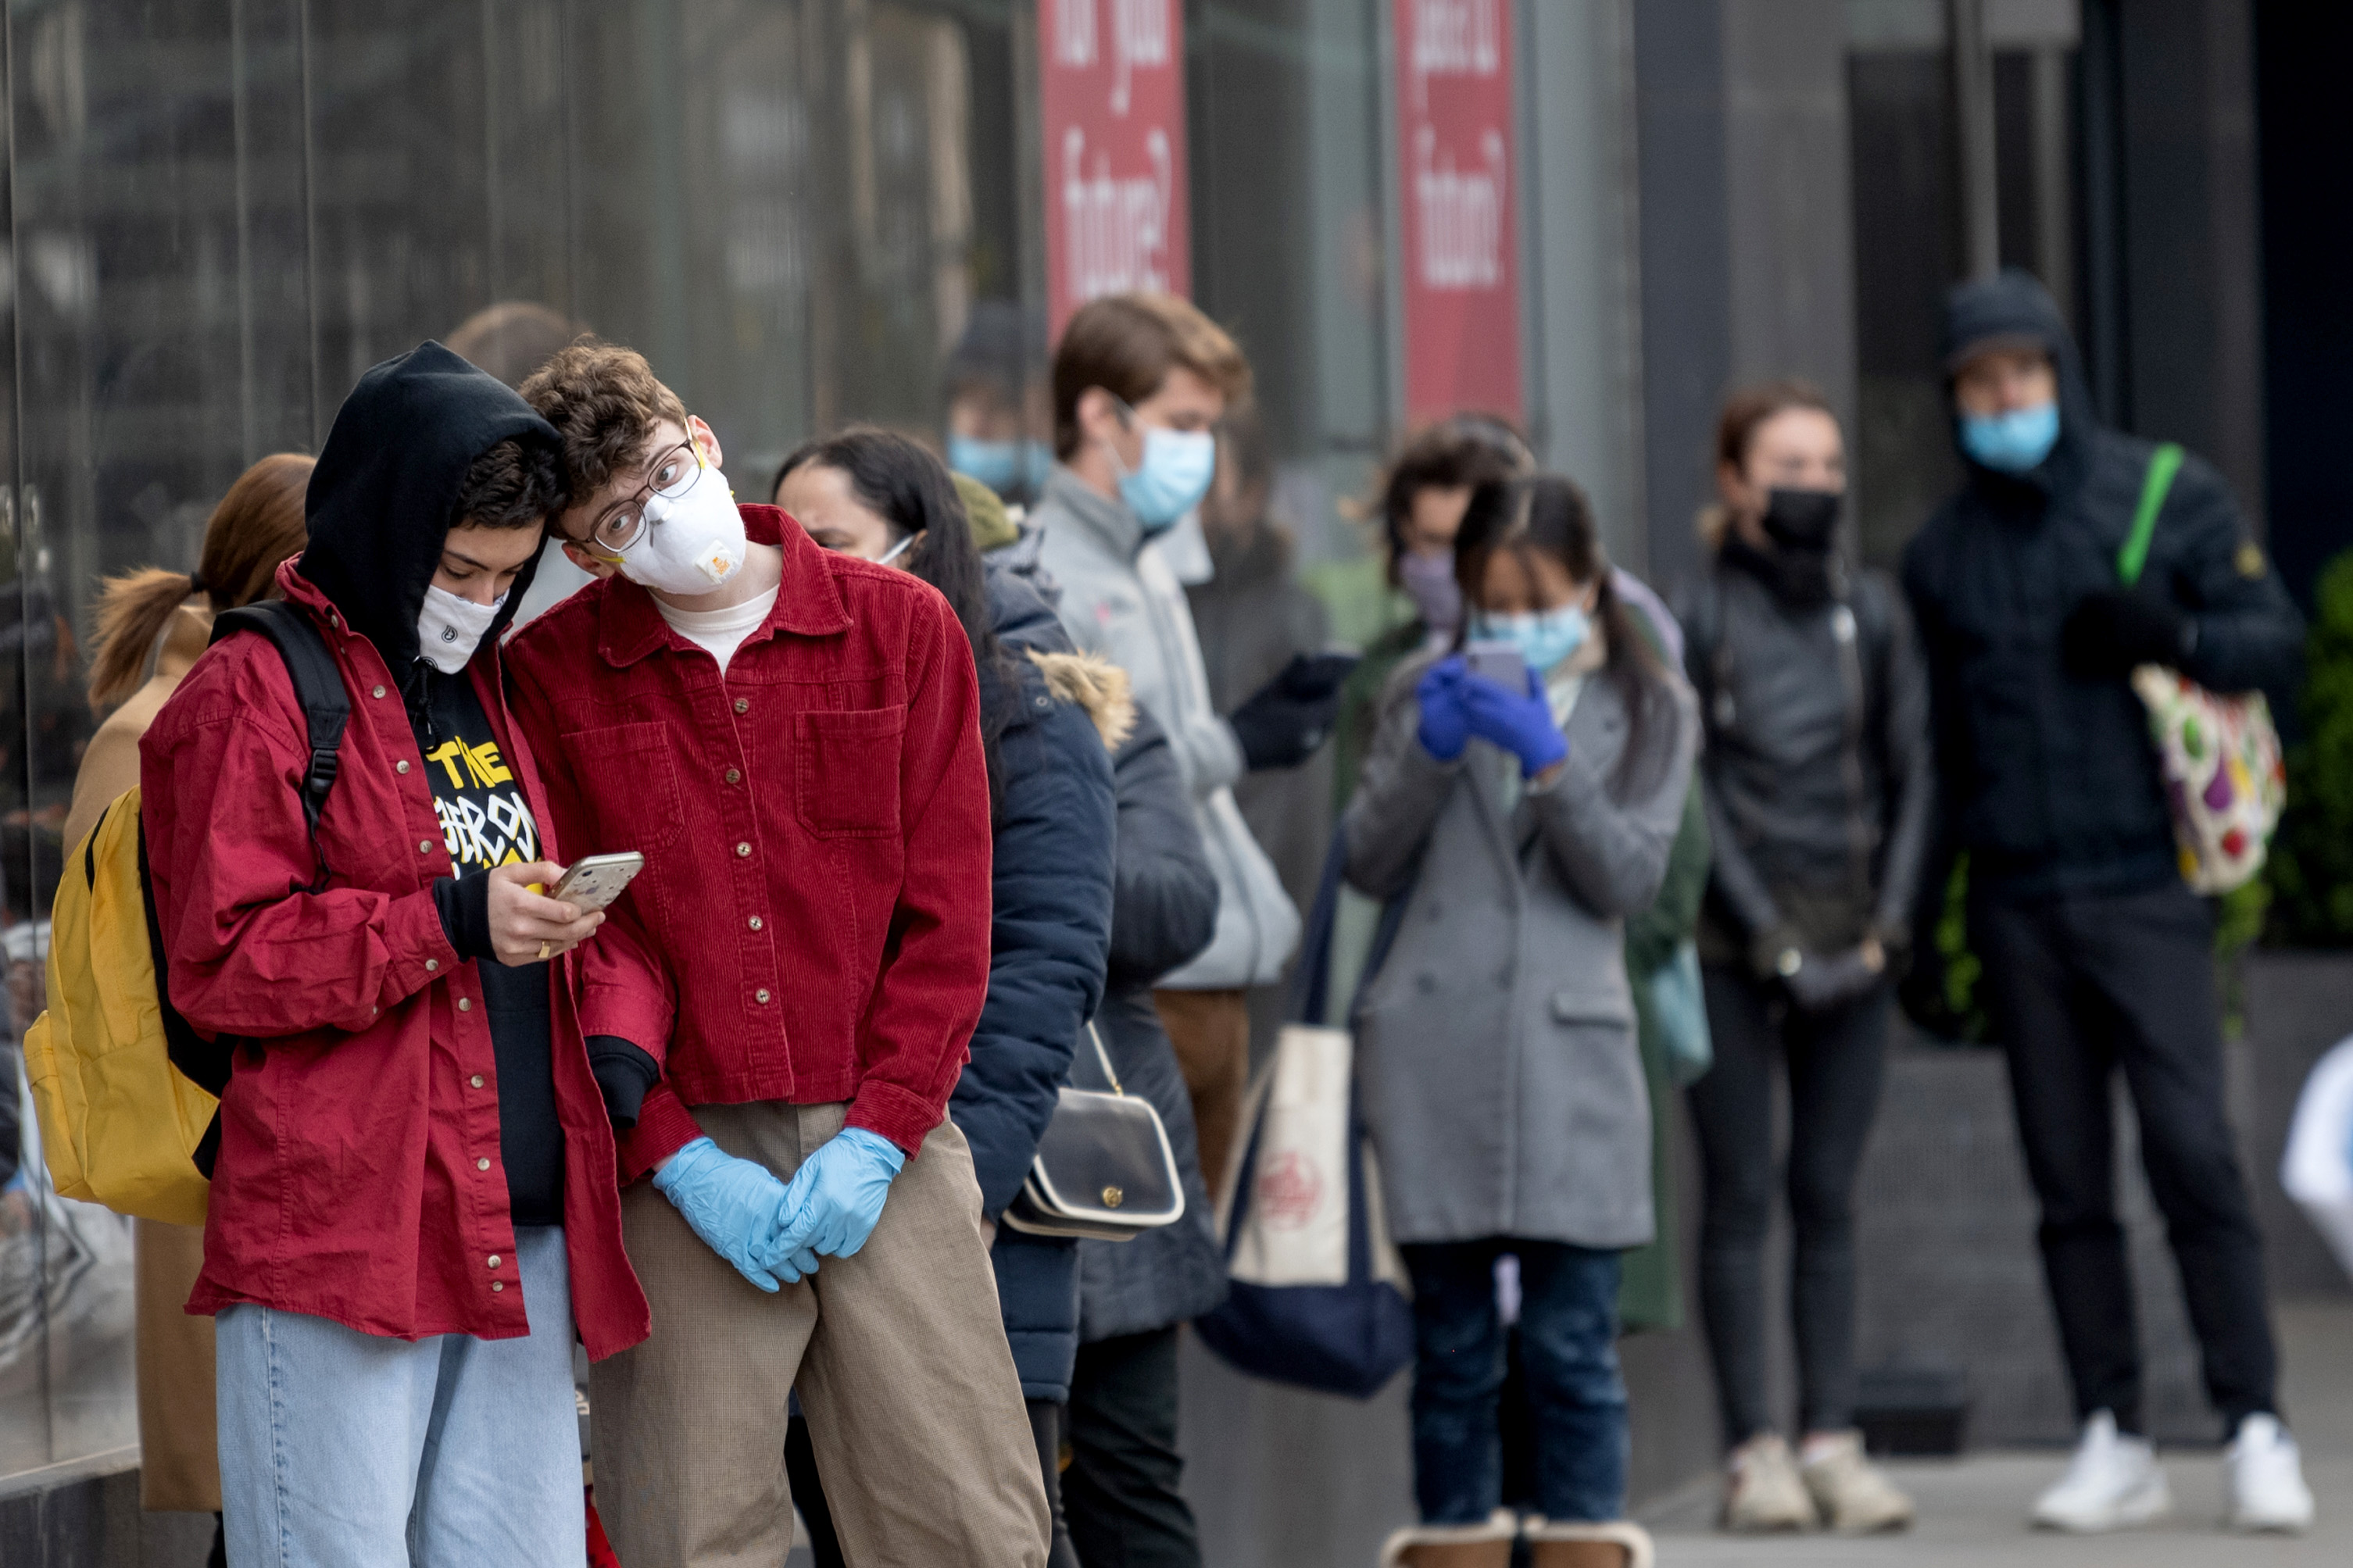 Shoppers stand in line outside a supermarket line amid the coronavirus pandemic on April 16, 2020 in New York City.